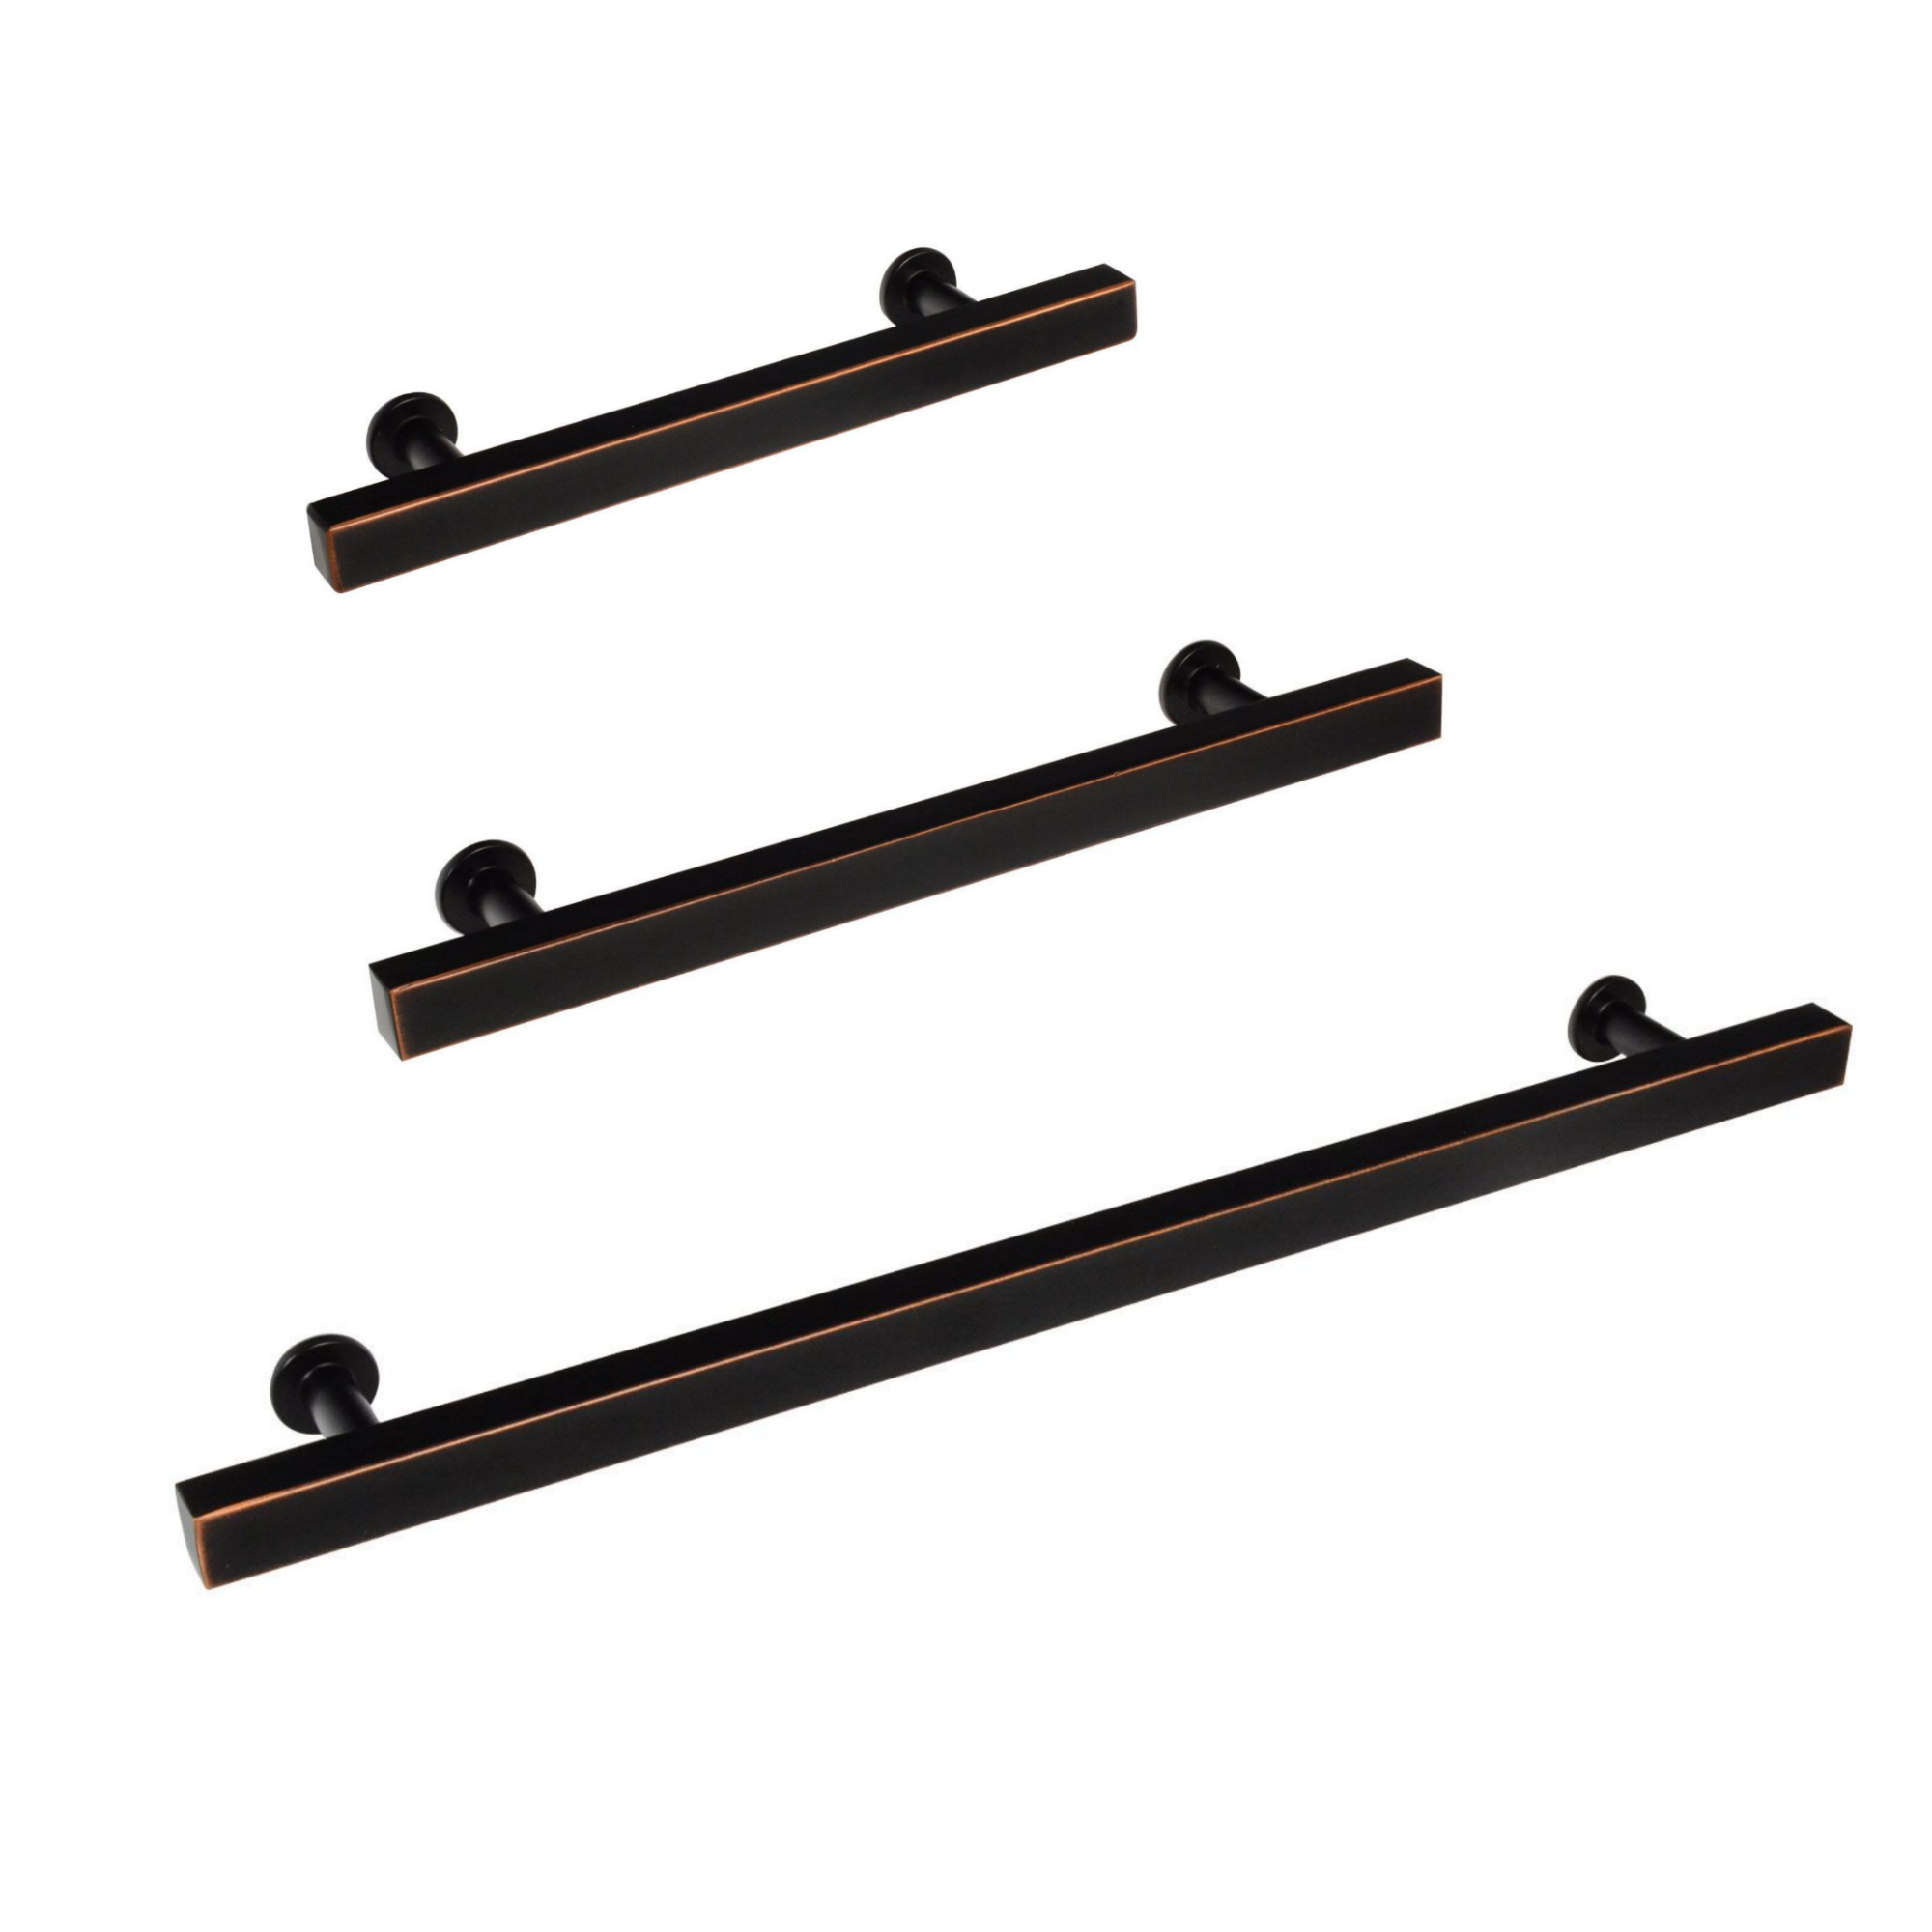 European T Bar Oil Rubbed Bronze Drawer Pulls Forge Hardware Studio